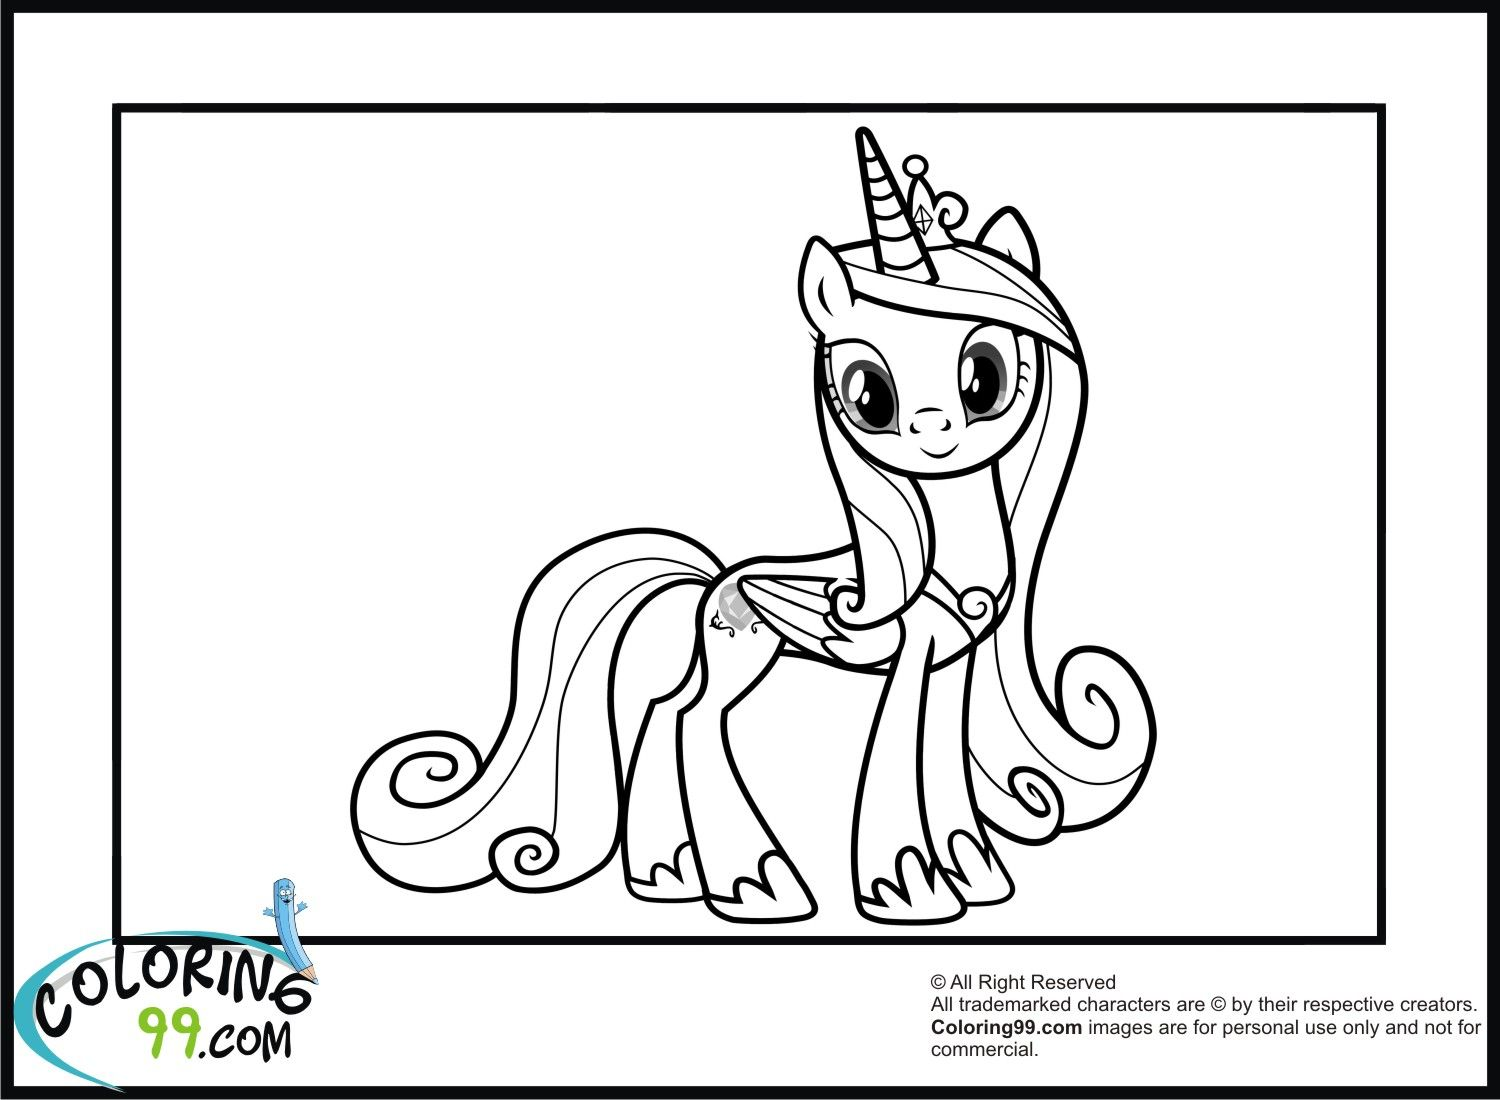 mlp printable coloring pages | Princess Cadence Coloring Pages ...